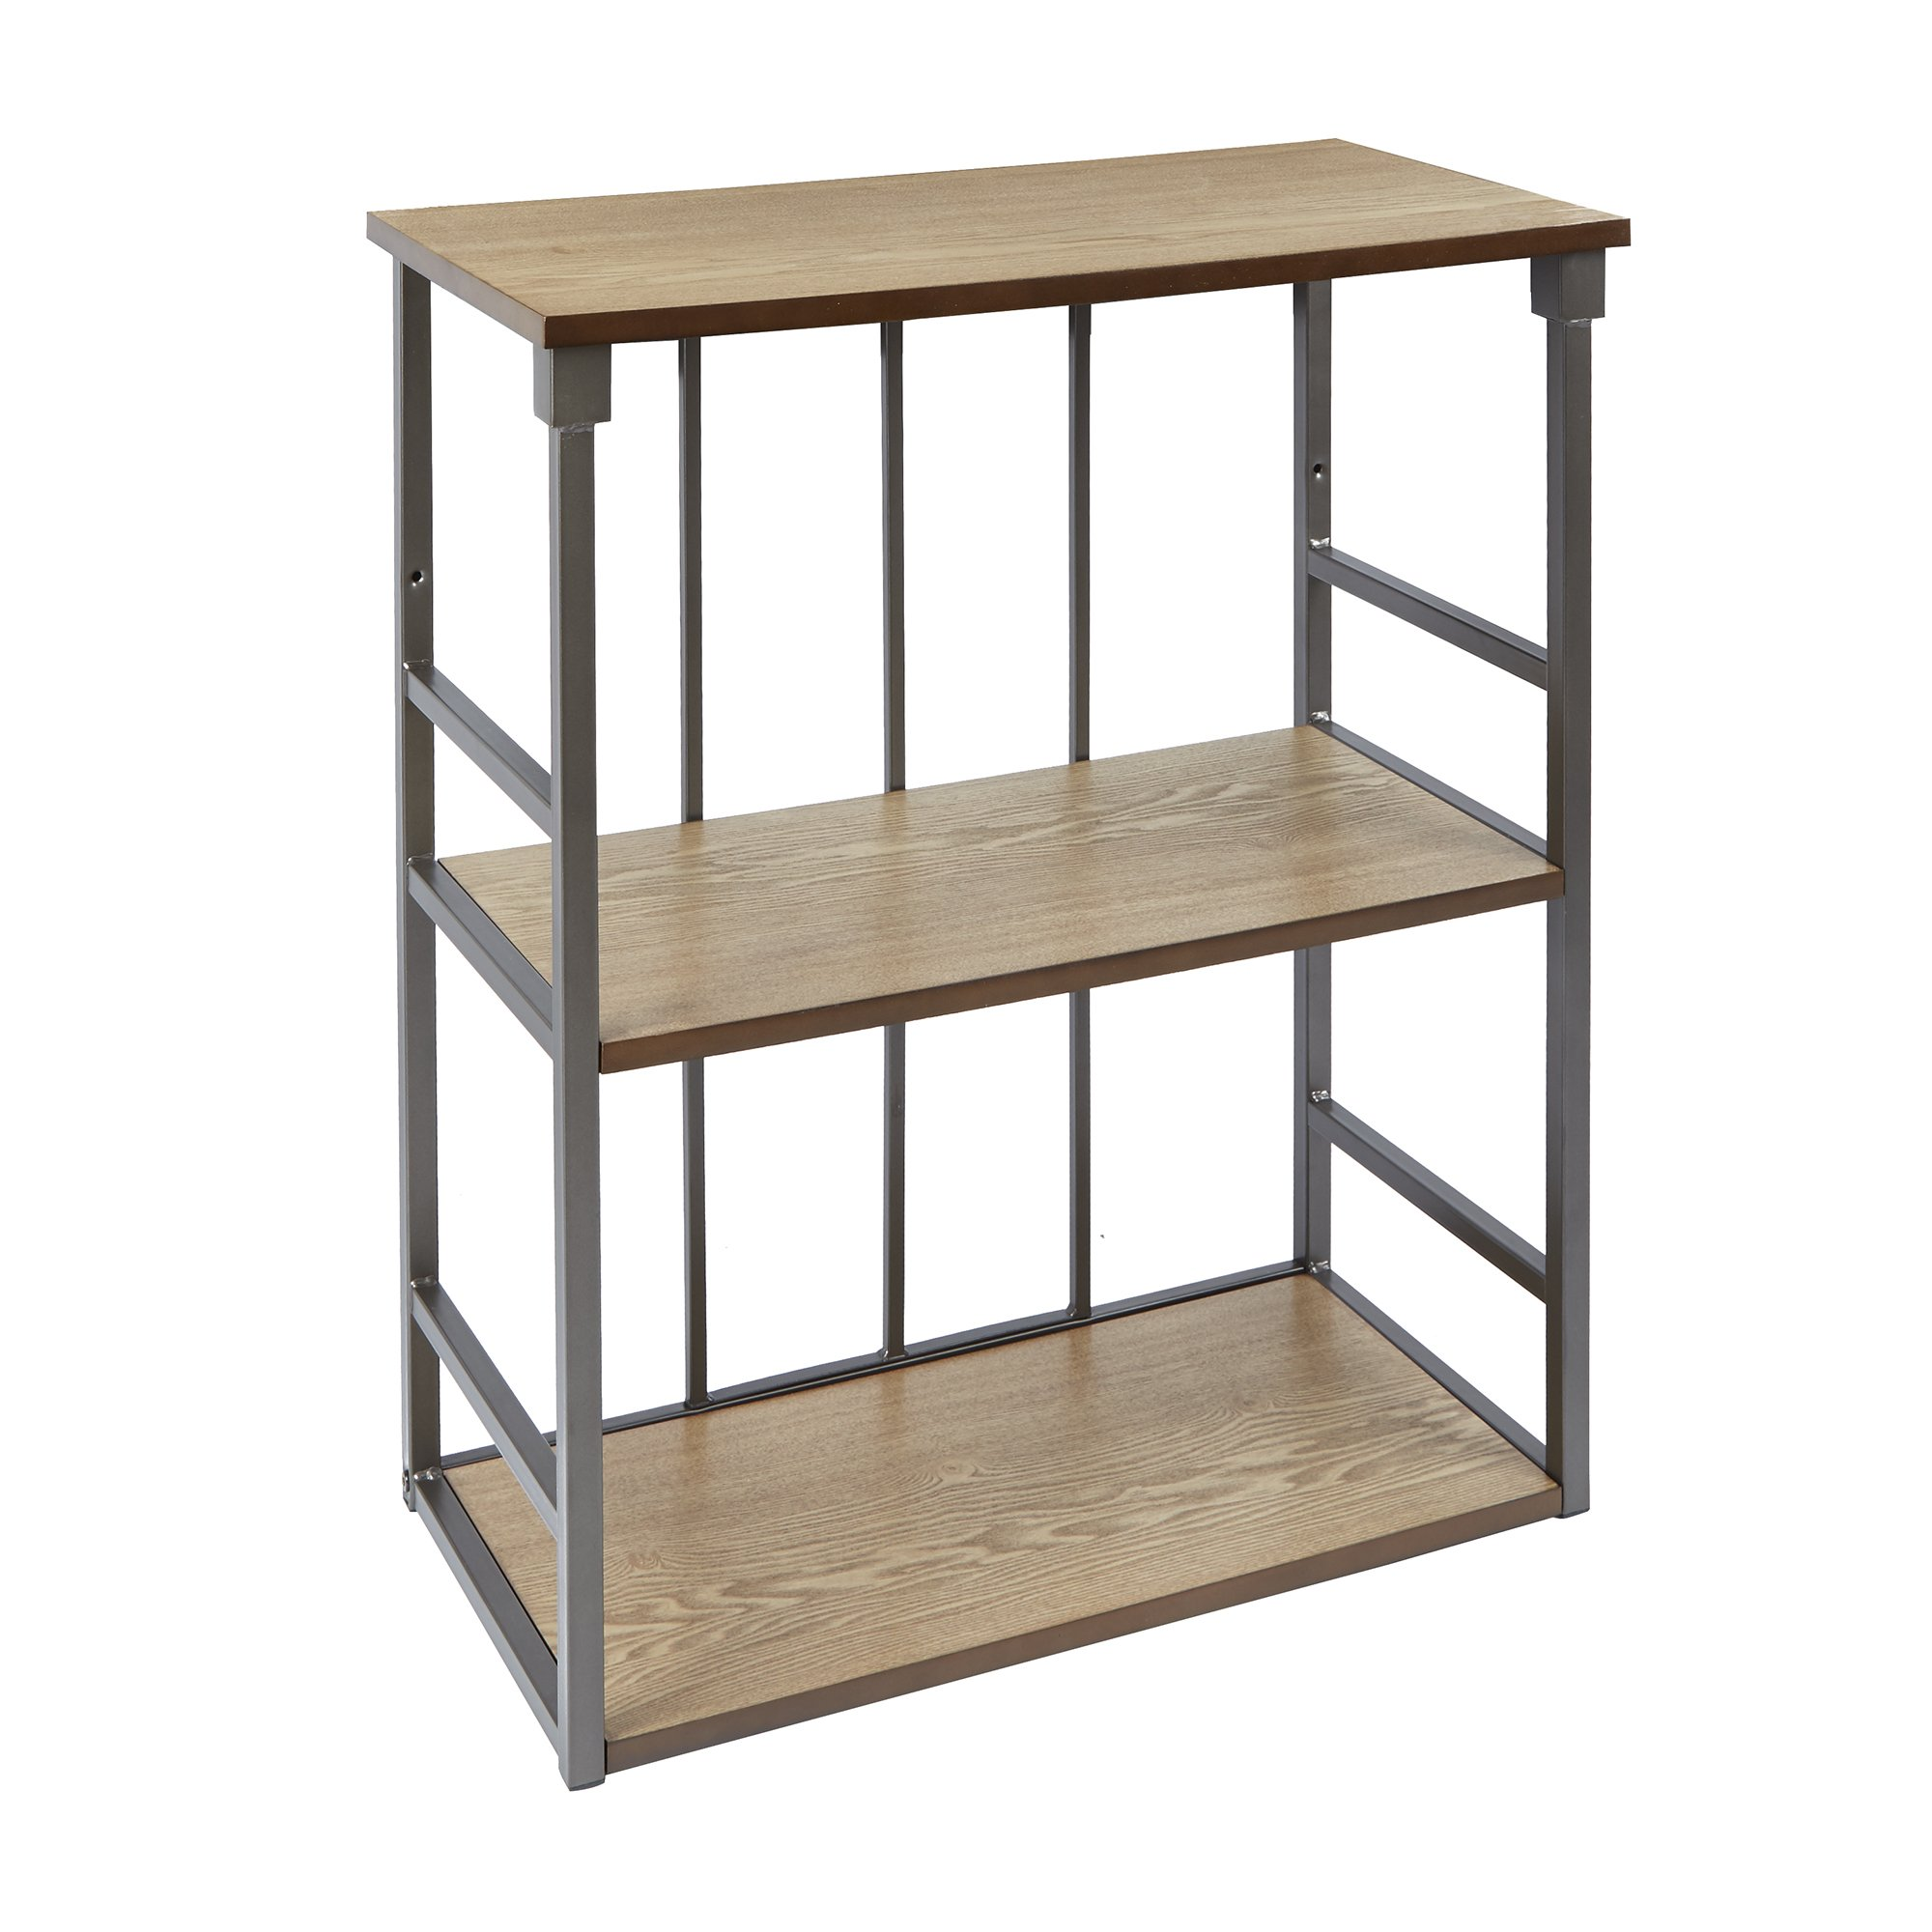 Silverwood Mixed Material Bathroom Collection 3-Tier Wall Shelf 3, 24'' W x 28'' H, Gunmetal